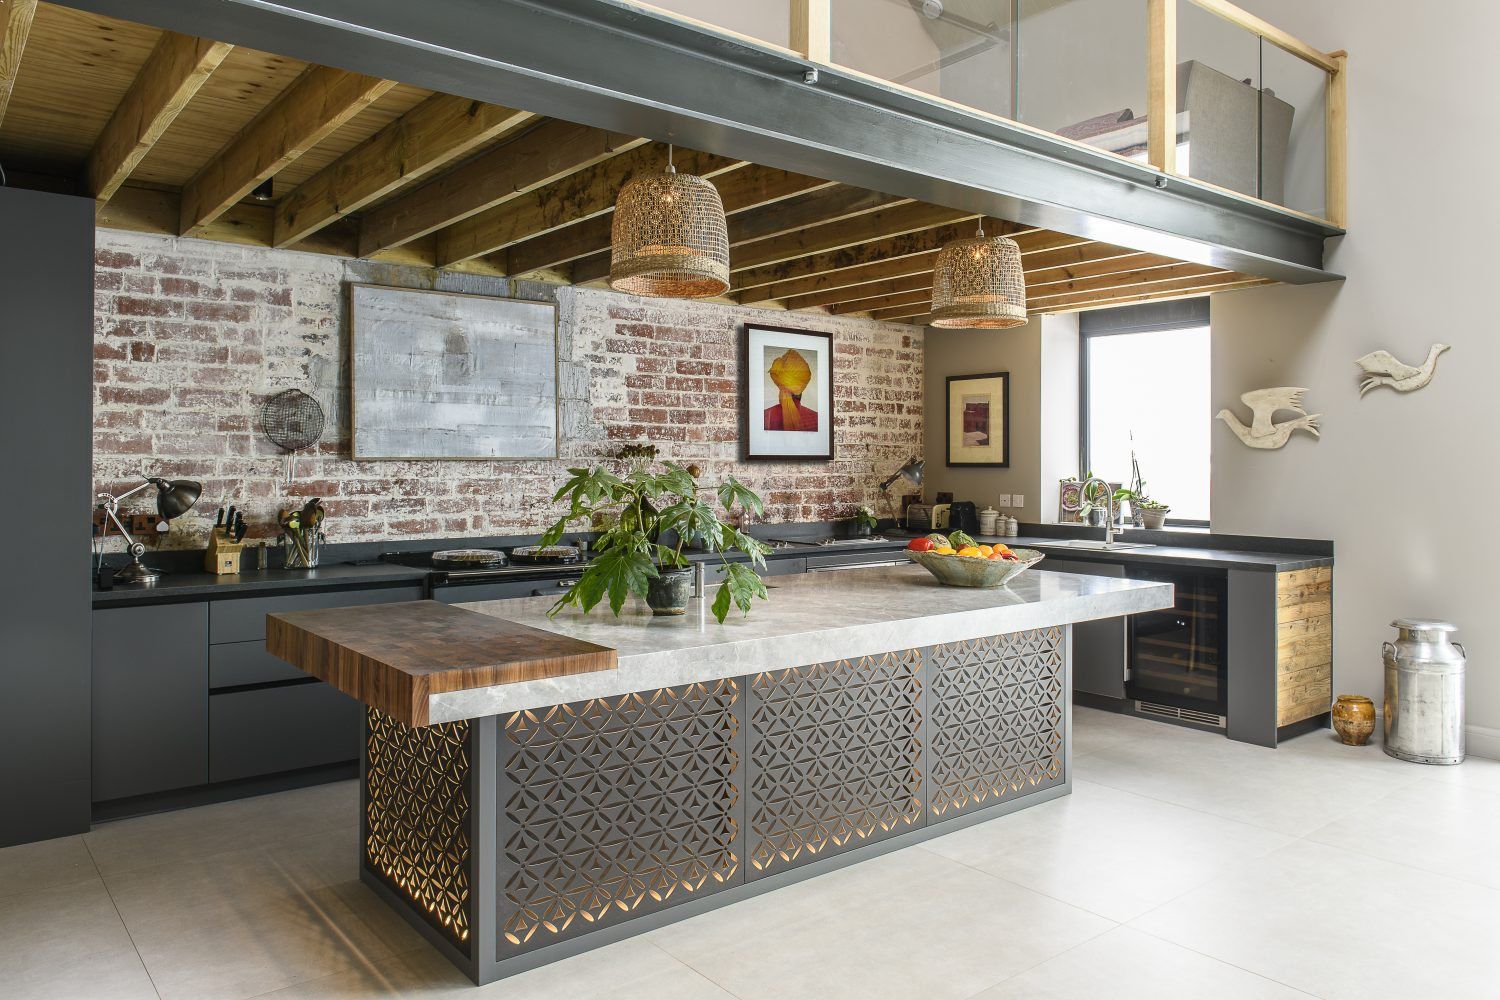 """The wall colour in the kitchen is Oak Apple from Fired Earth, a lighter colour is used here as a contrast; the kitchen nestles under part of the mezzanine. Above the cleverly illuminated island unit, what appear to be bespoke lamp shades are in fact upturned wastepaper baskets slotted over the existing shades. """"I hate seeing the light source,"""" the owner explains, """"this way you get the diffusion of light but the bulb is invisible."""""""